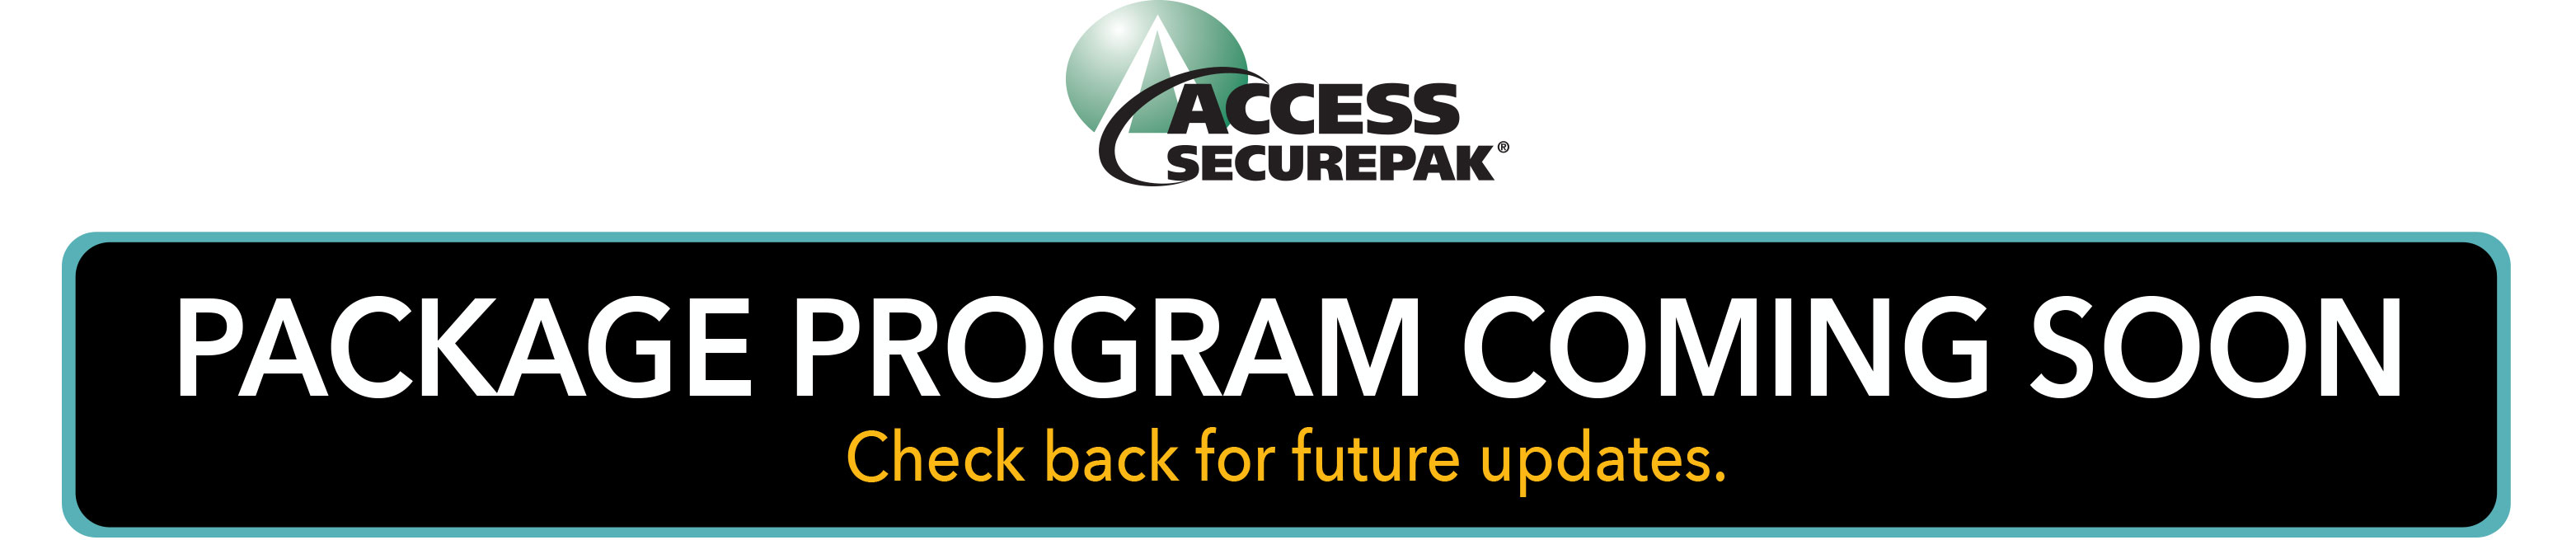 Access Securepak - Forsyth County Detention Center - NC - Welcome